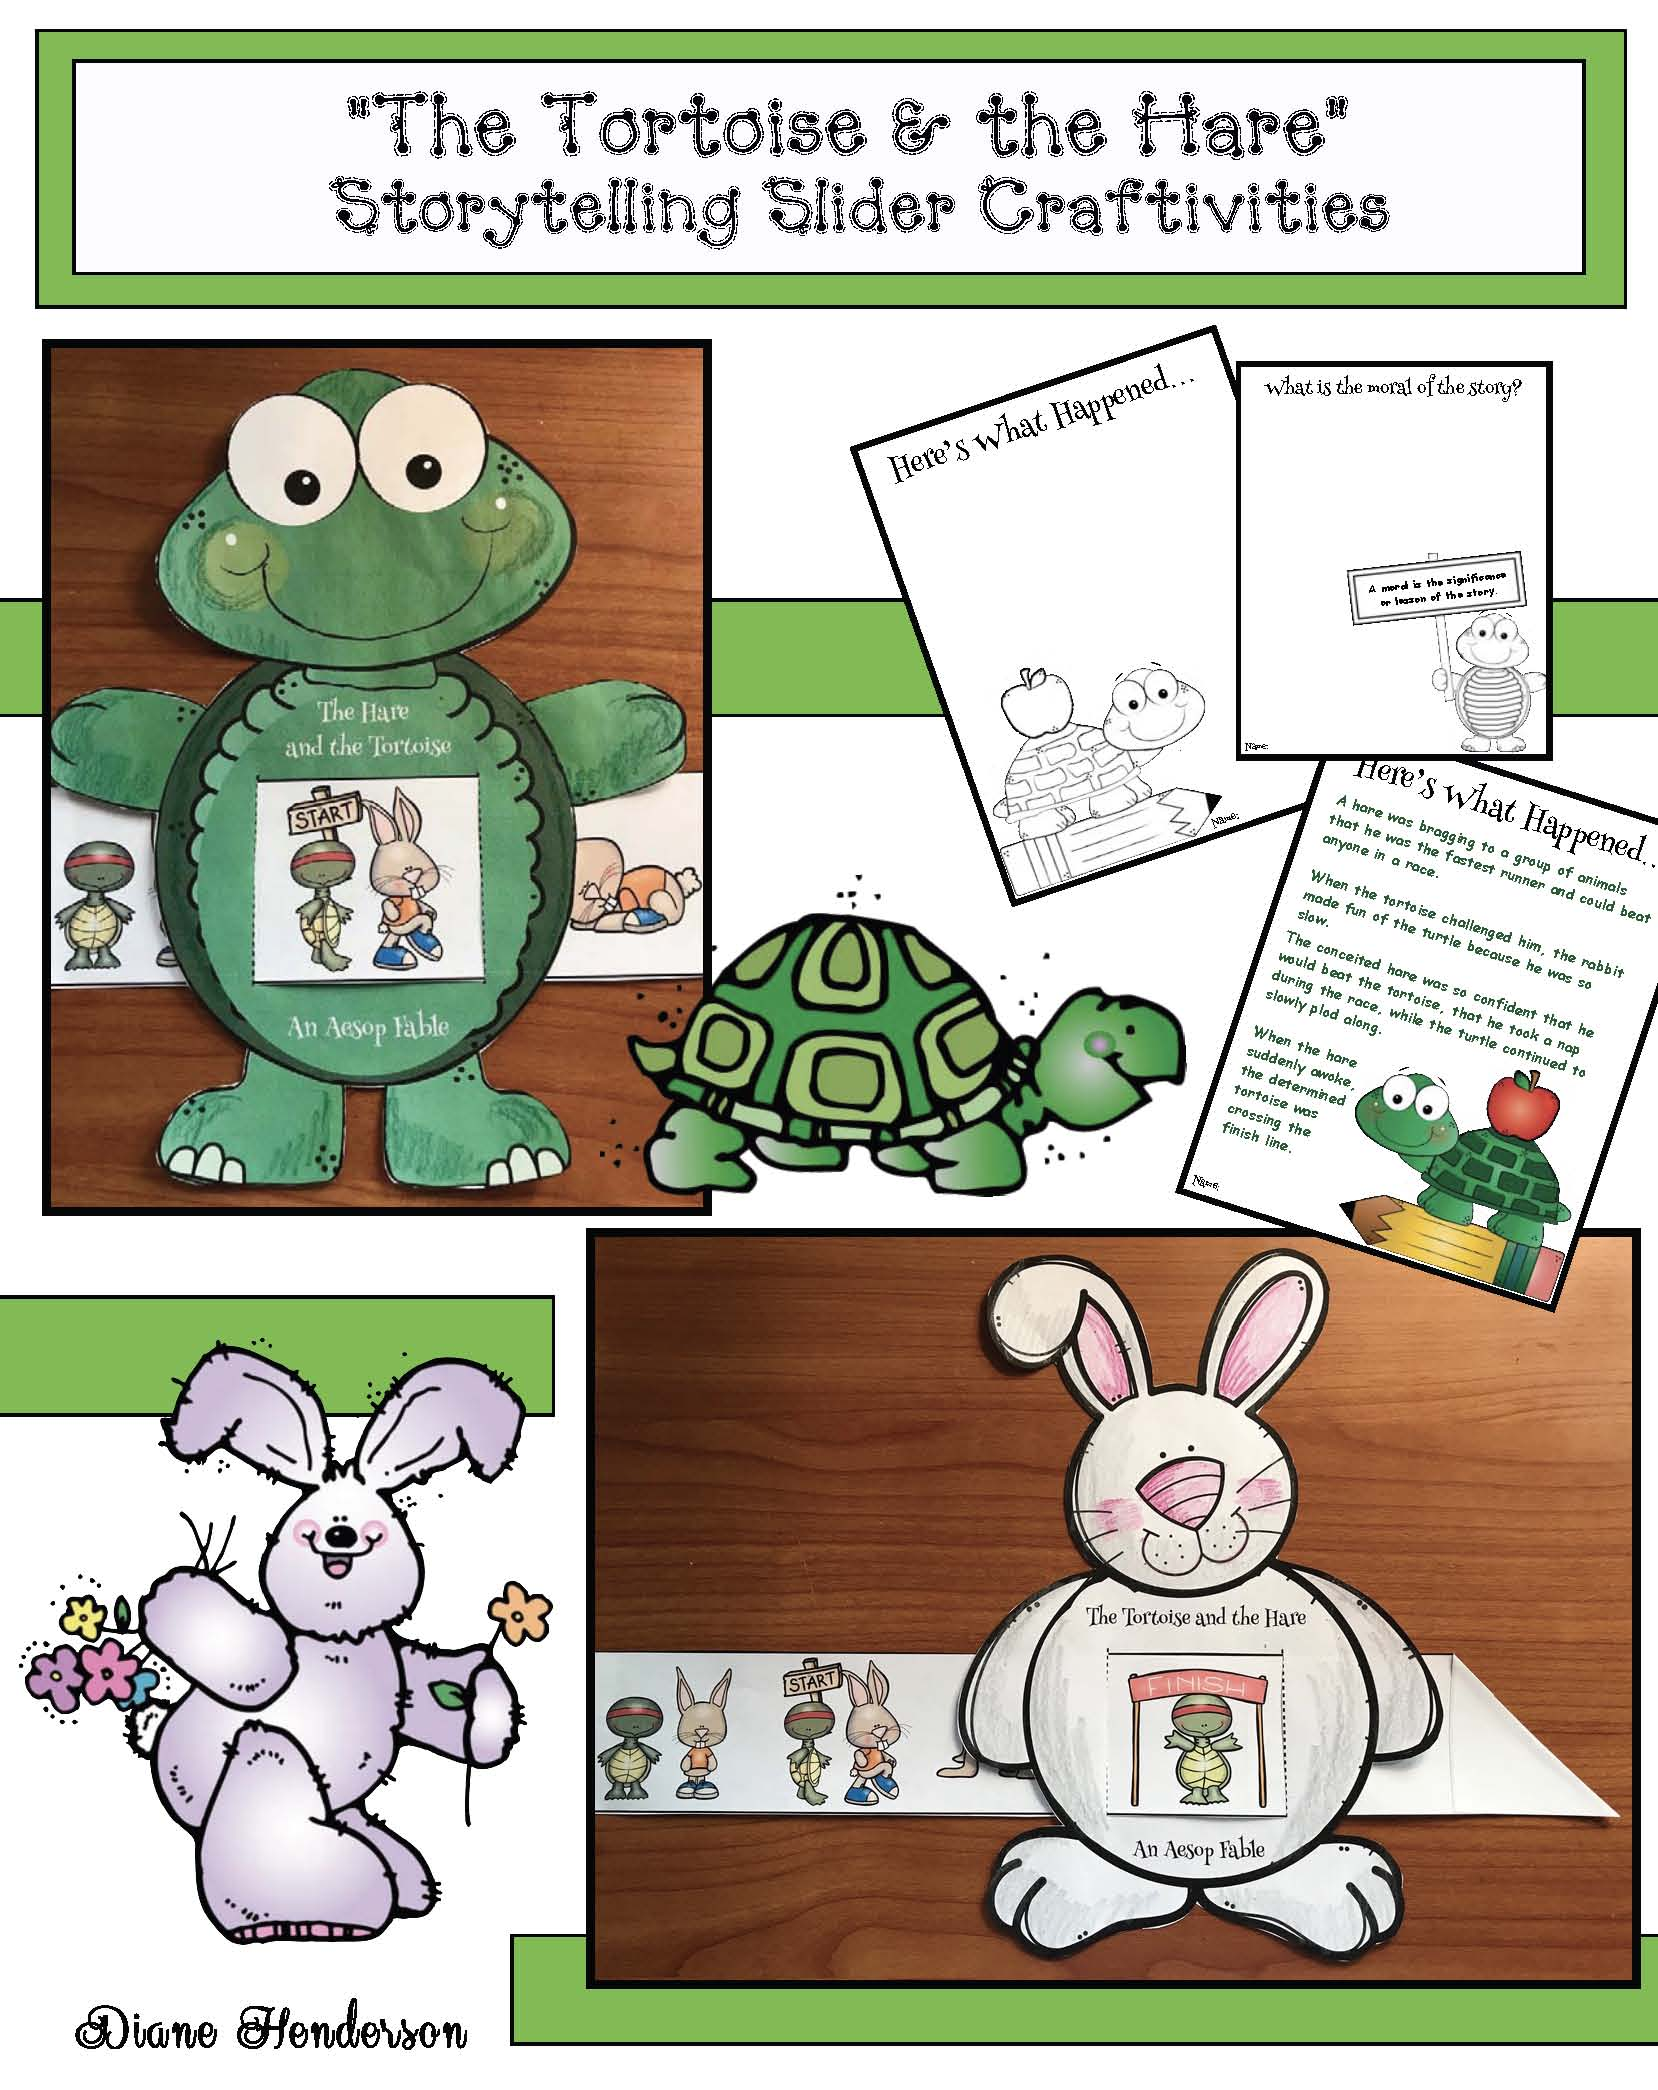 the tortoise & the hare fable, the hare & the tortoise fable, aesops fables, activities for aesops fables, fables, the moral of the story, aesop fables crafts